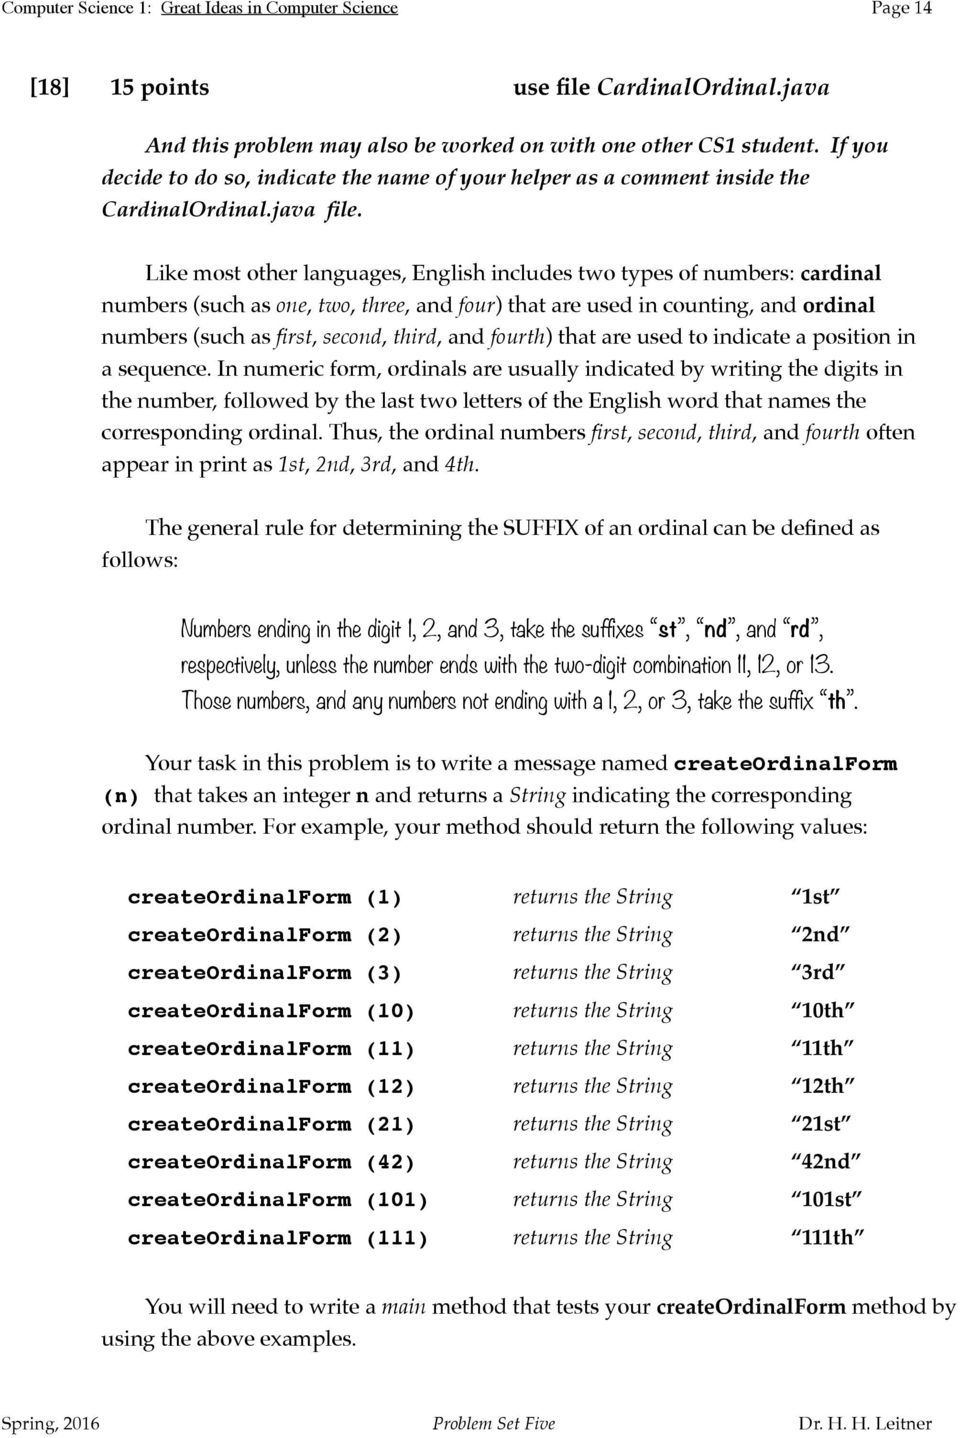 introduction to computer test questions pdf